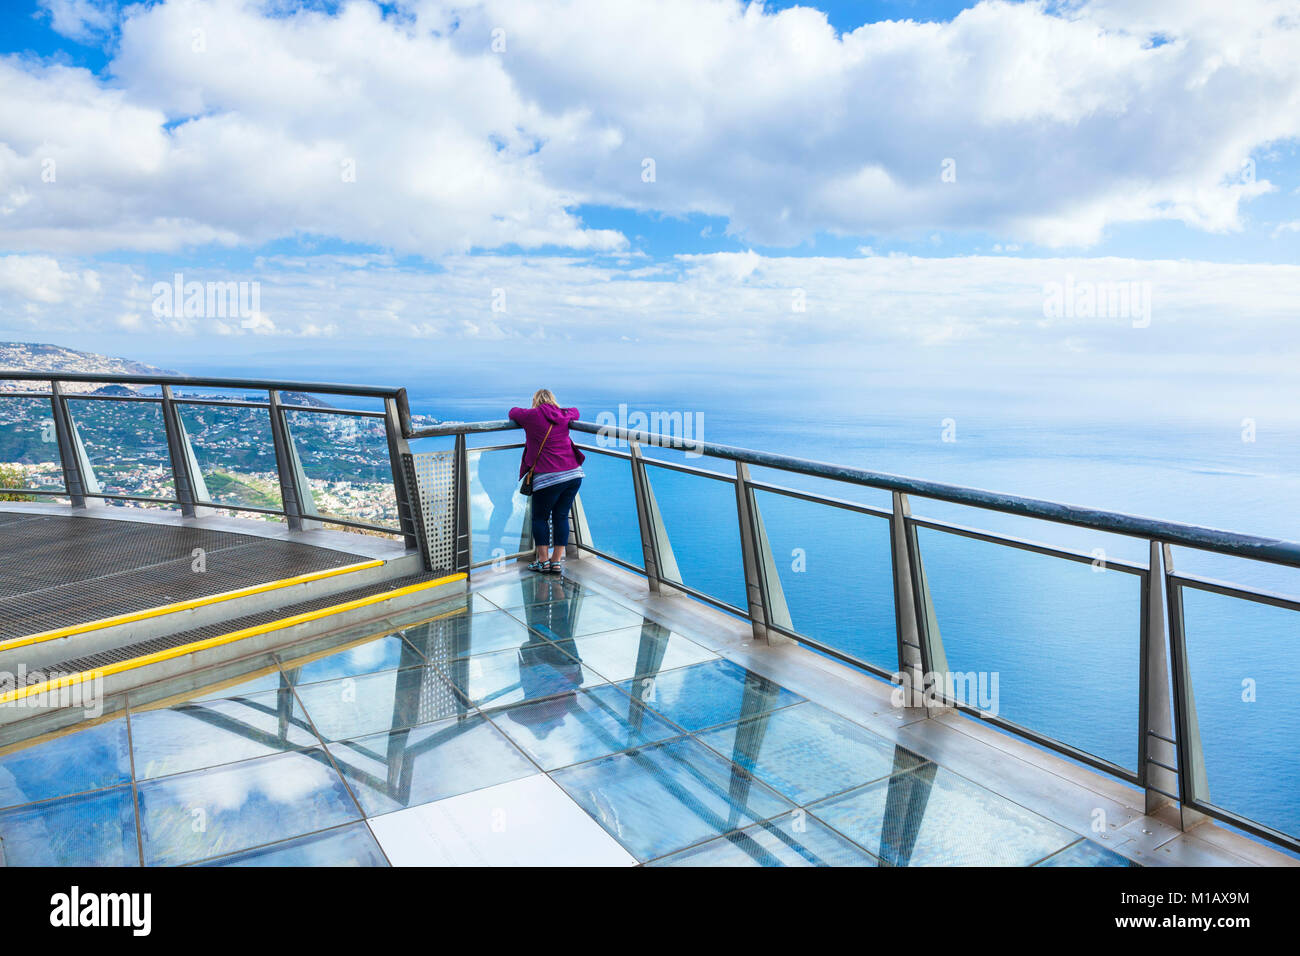 Cabo girao madeira portugal madeira Tourist on glass viewing platform at Cabo Girao skywalk a high sea cliff south - Stock Image